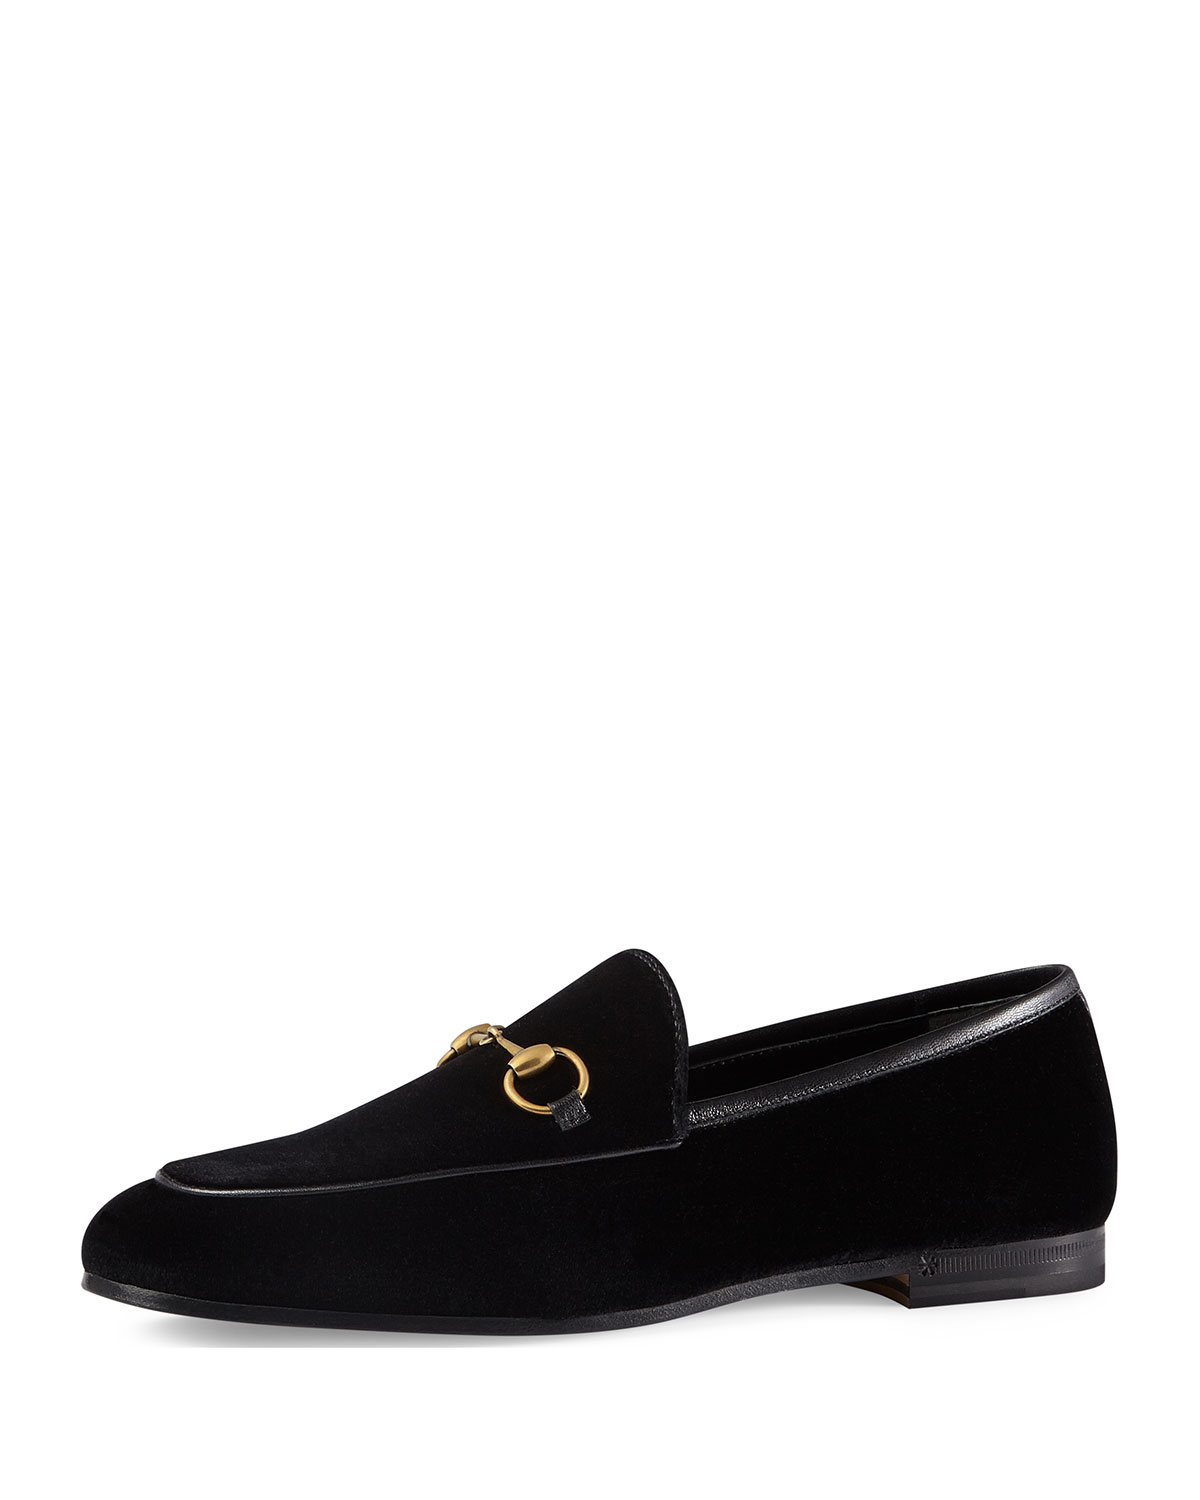 91228dc2f44 Gucci 10mm New Jordaan Velvet Loafer